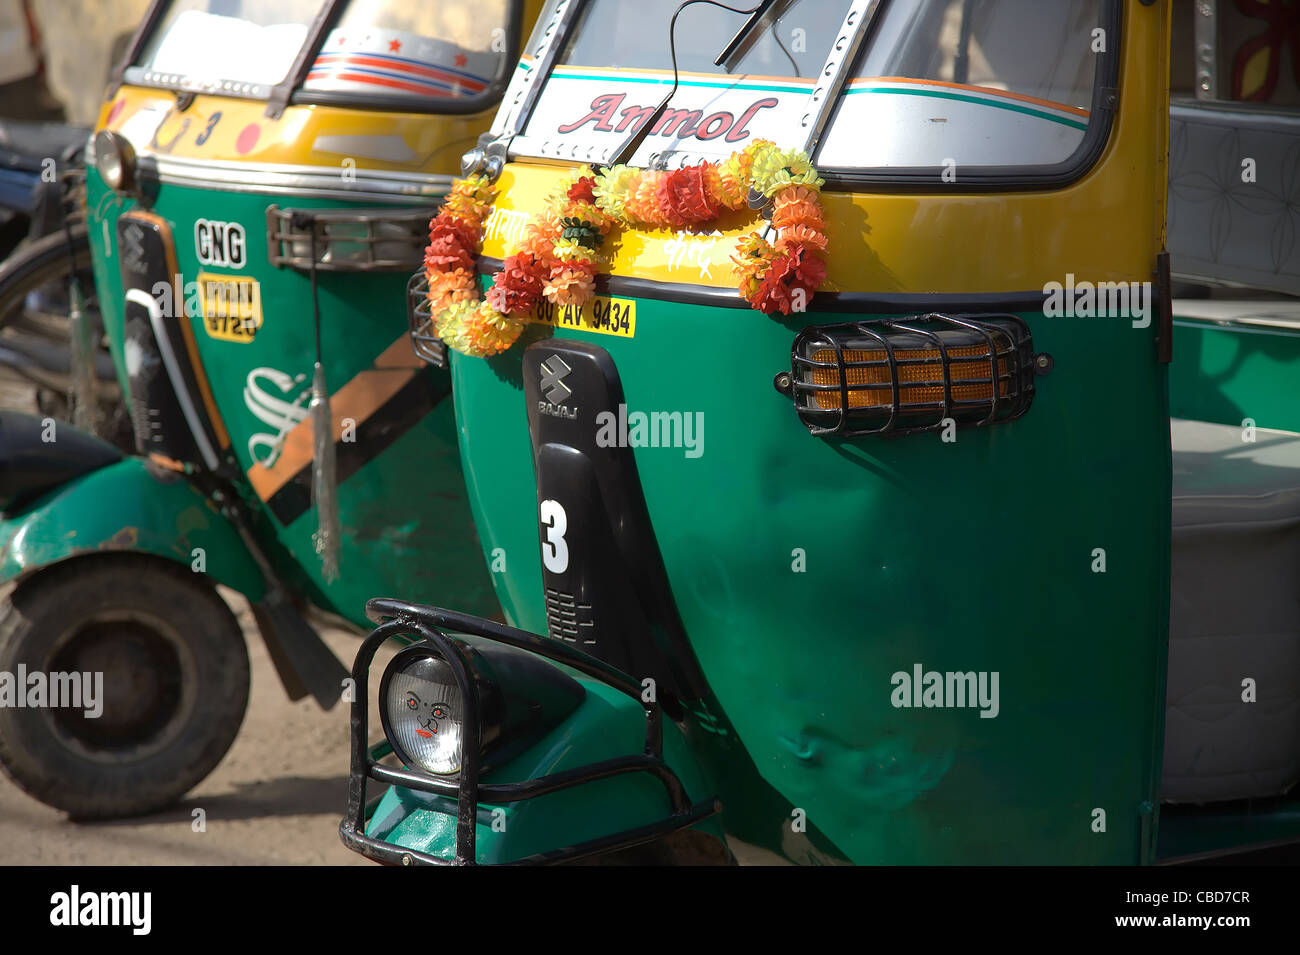 Three-wheeler scooter vehicle traditional Indian transport auto colorful garlanded - Stock Image